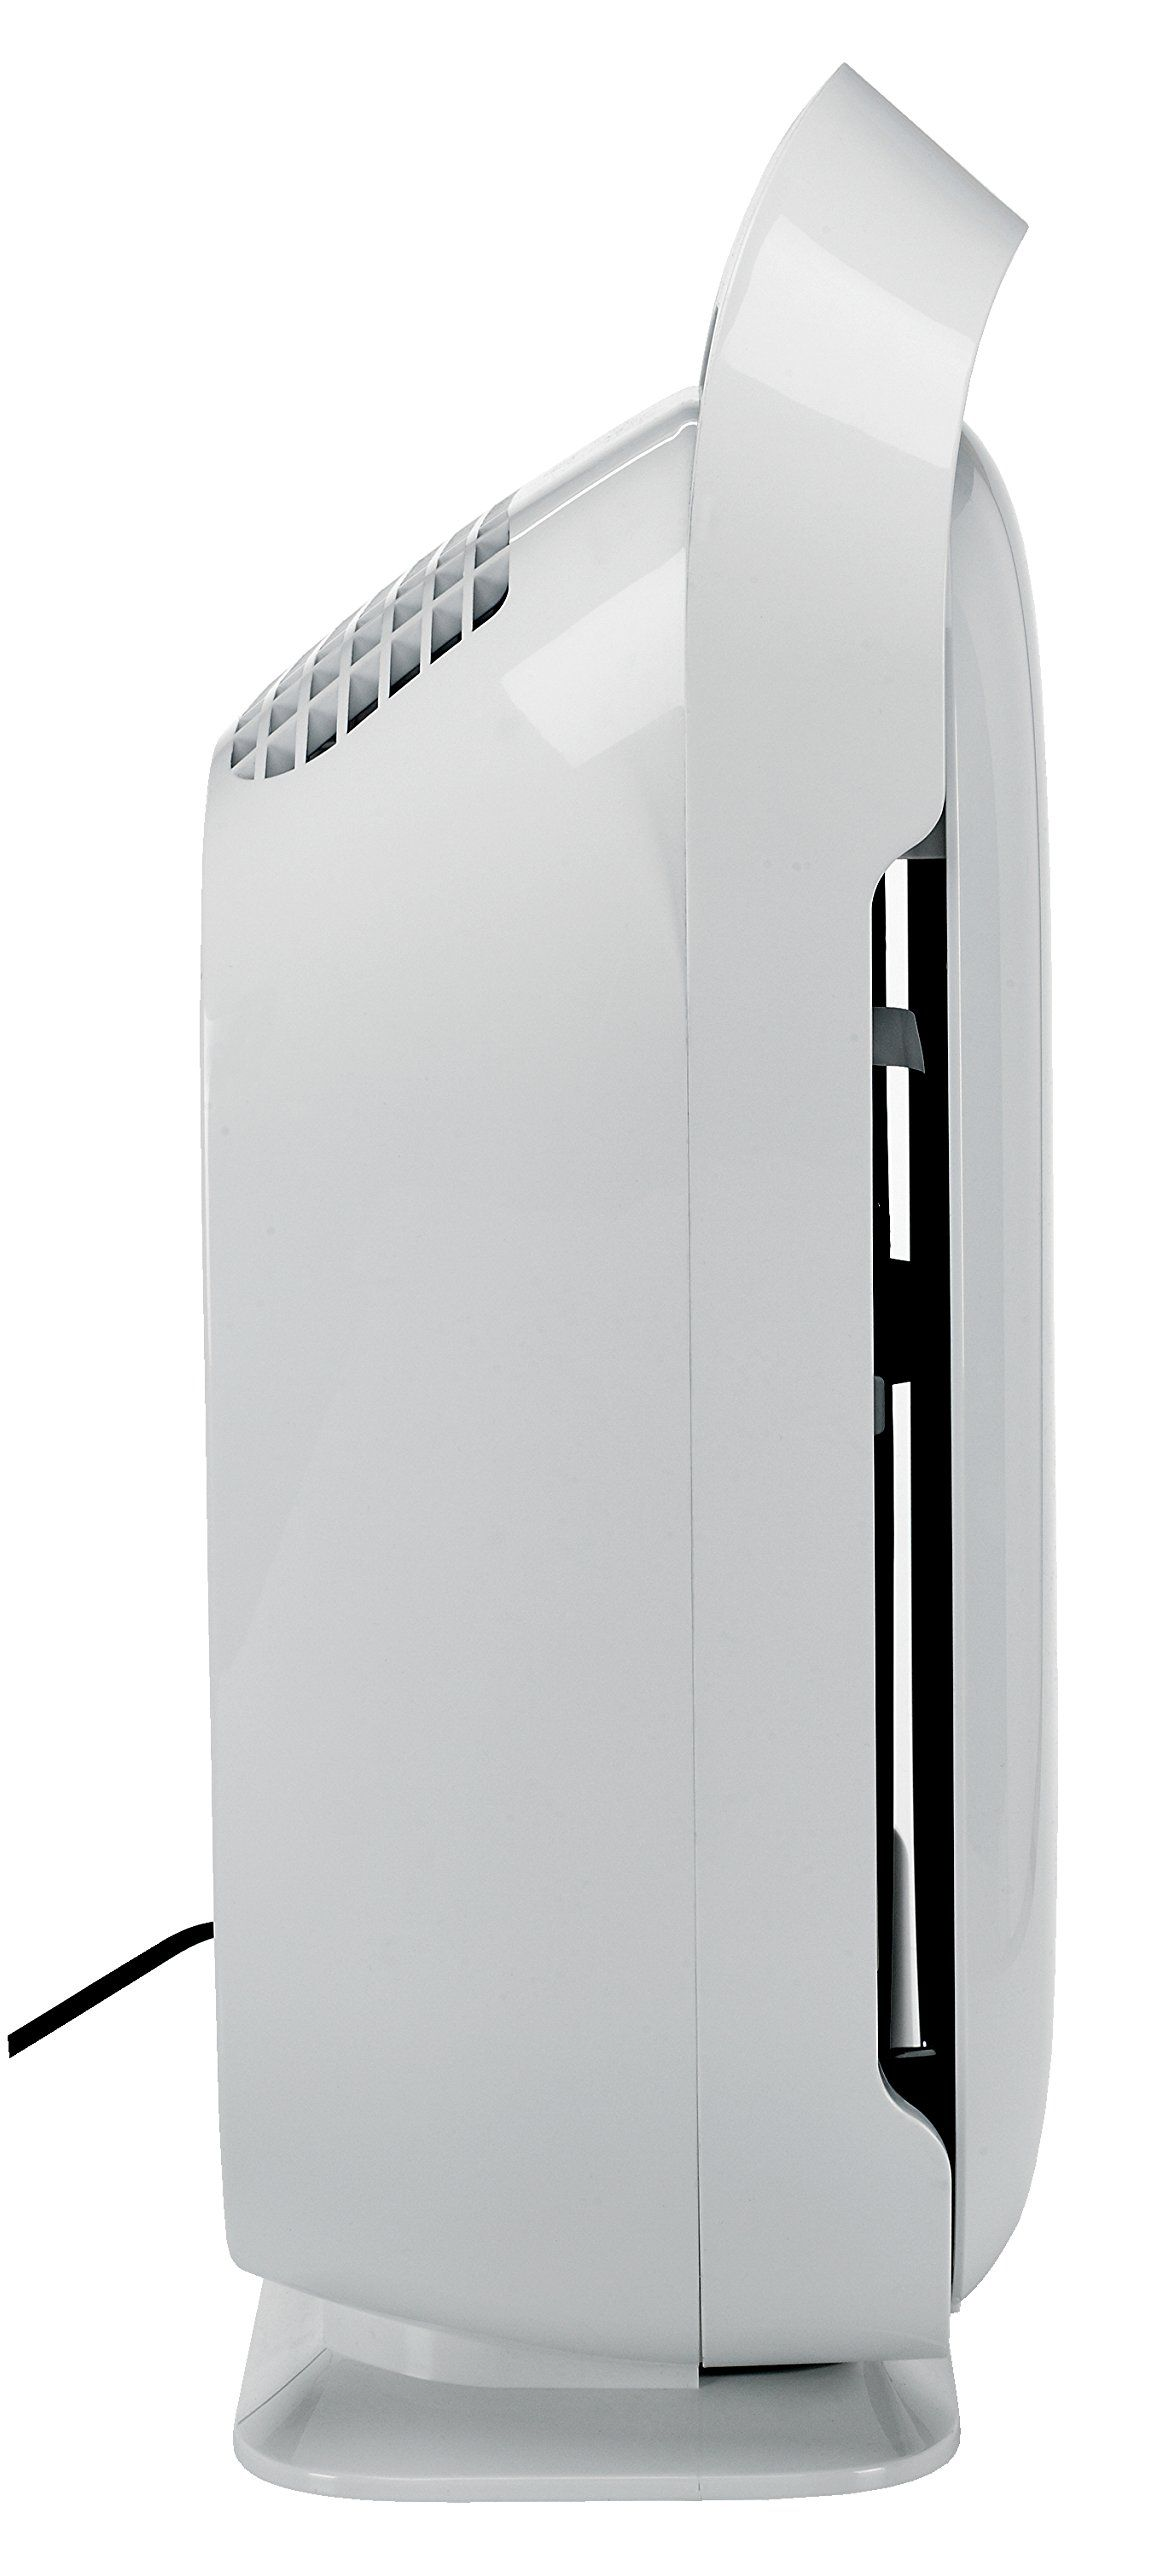 GermGuardian AC9200WCA HiPerformance Air Purifier with